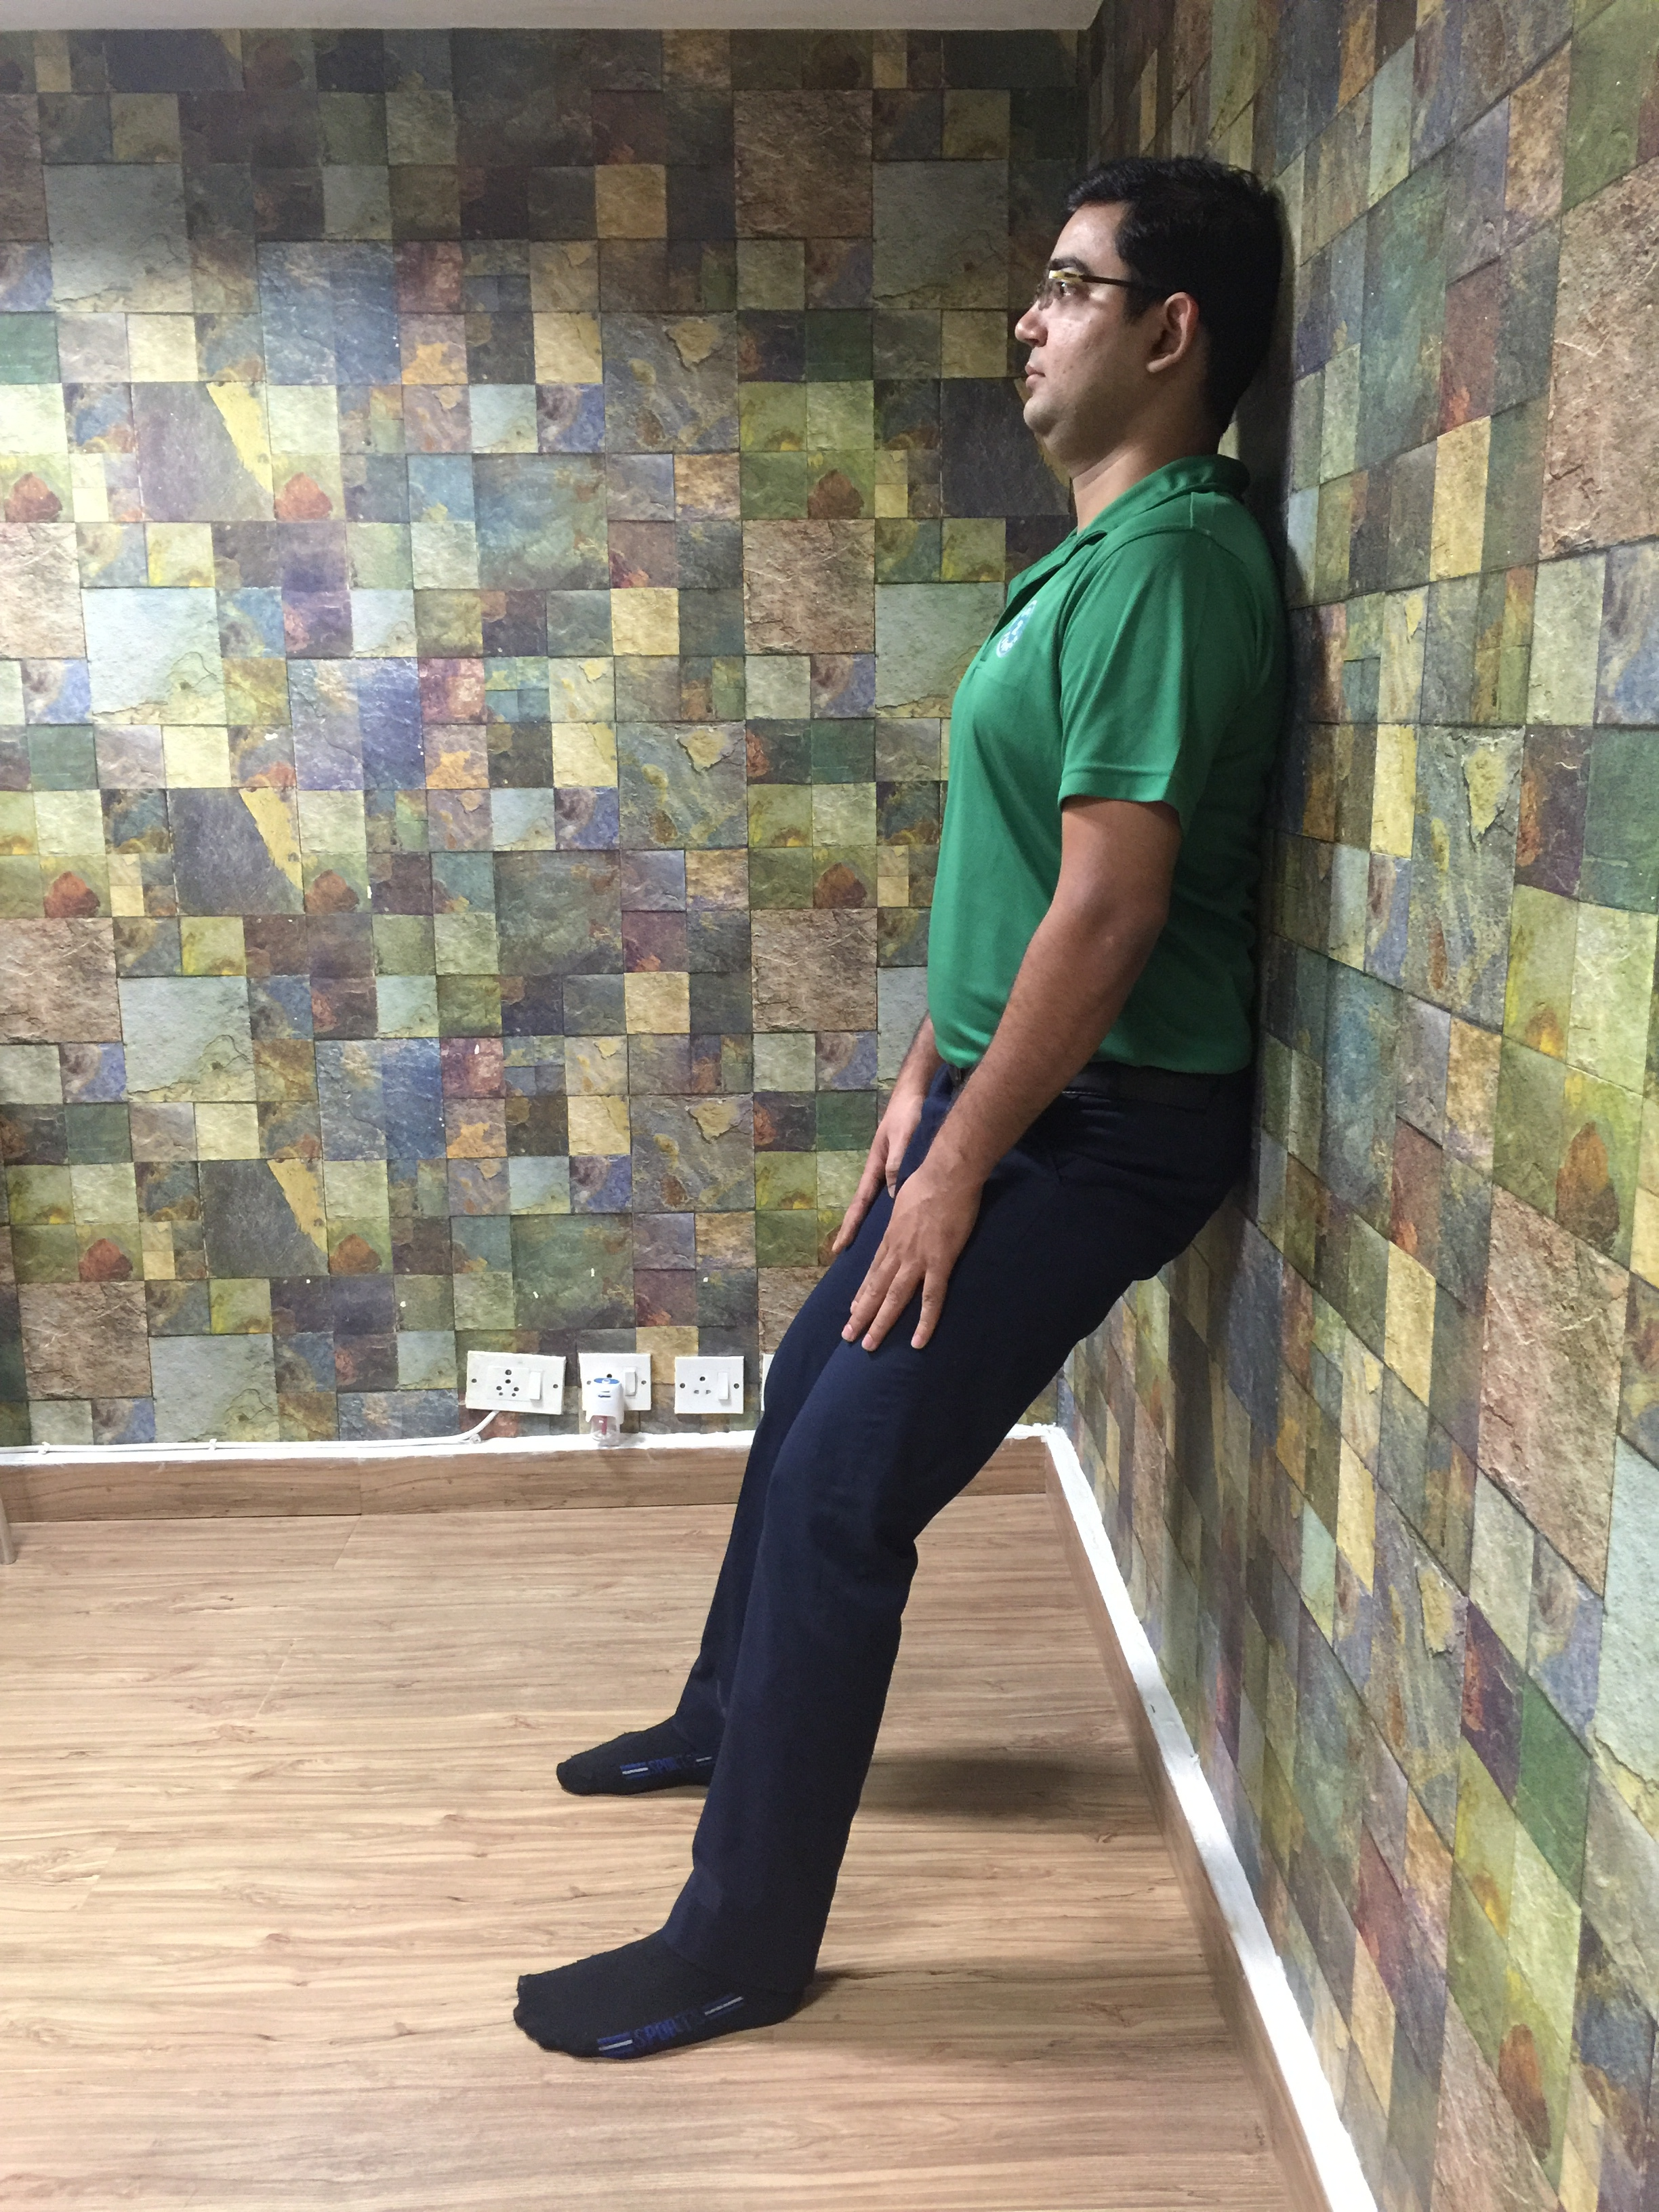 Lean with your back against a wall. Keep your feet shoulder-width apart and about 2ft from the wall.